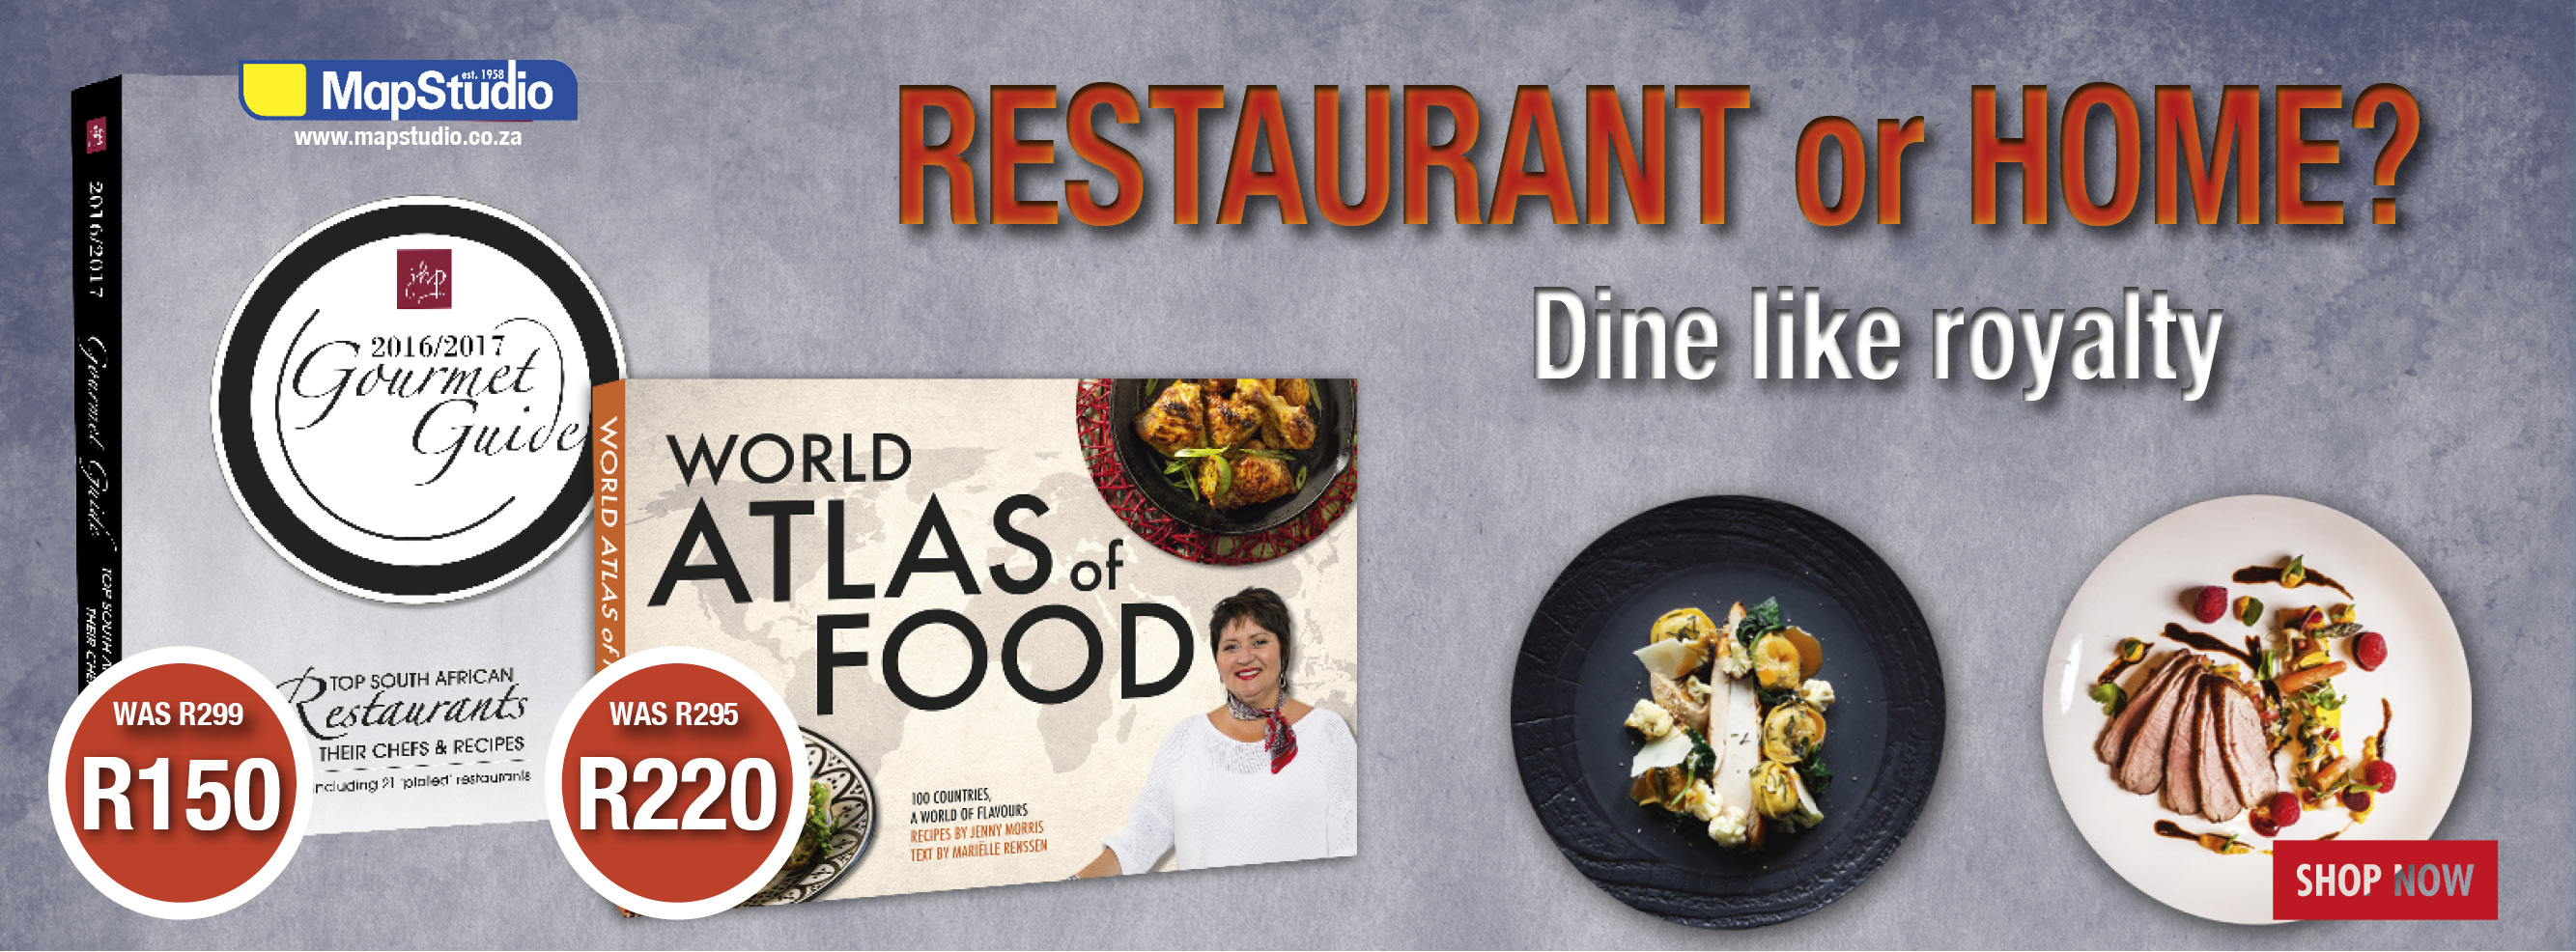 Gourmet Guide and World Atlas of Food